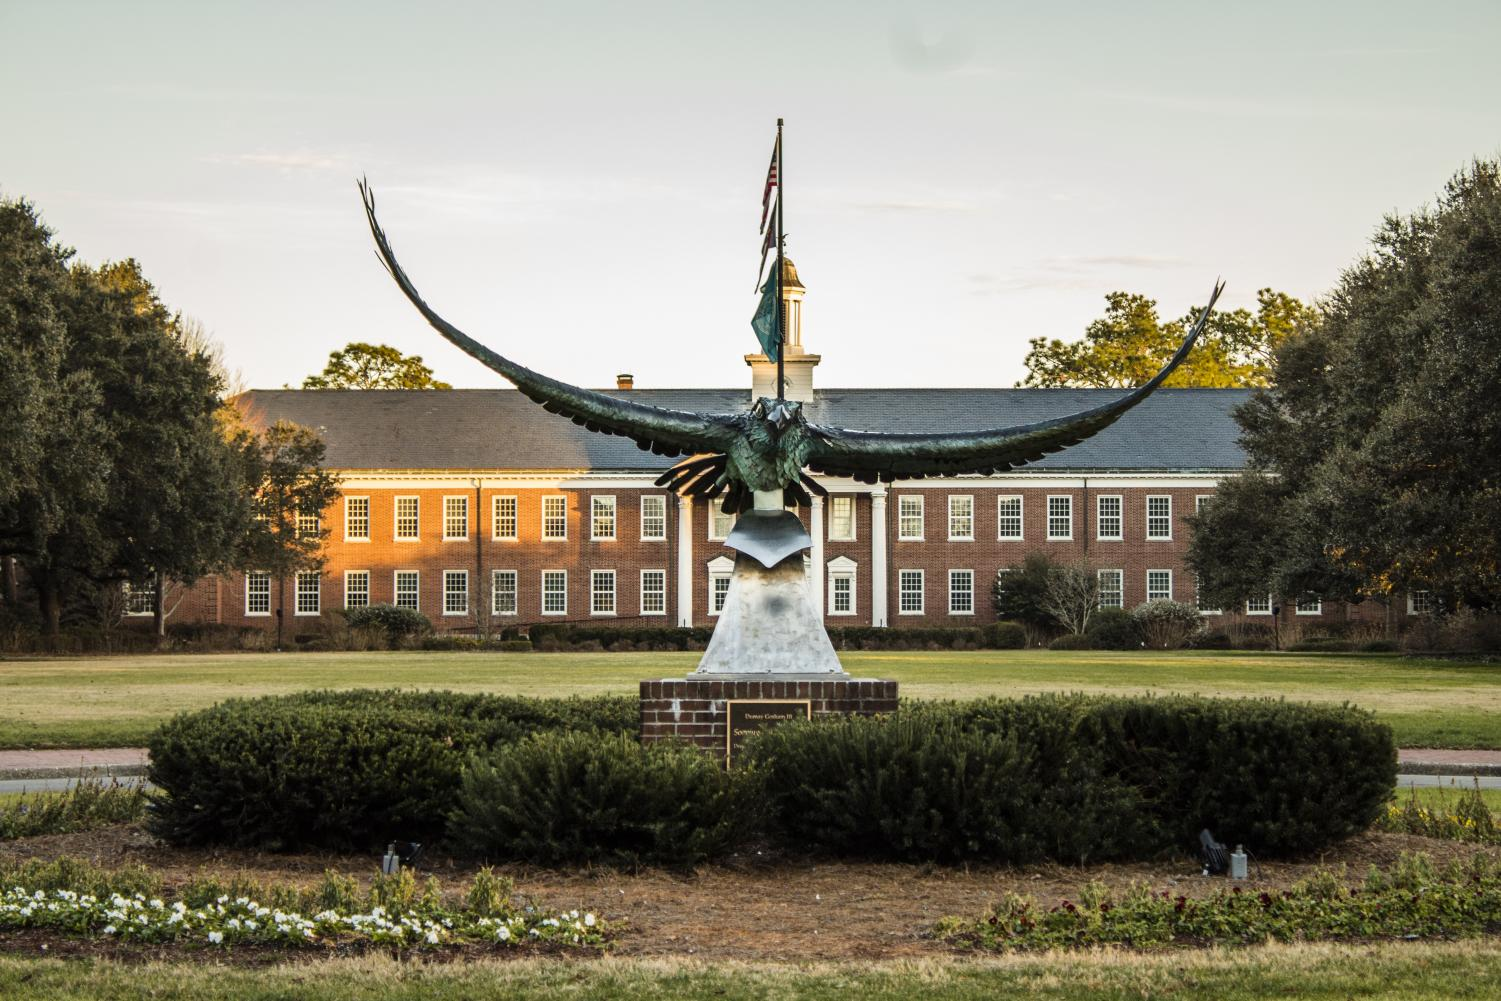 The University of North Carolina Wilmington is home to many majors, clubs and organizations all focused on student development and education.